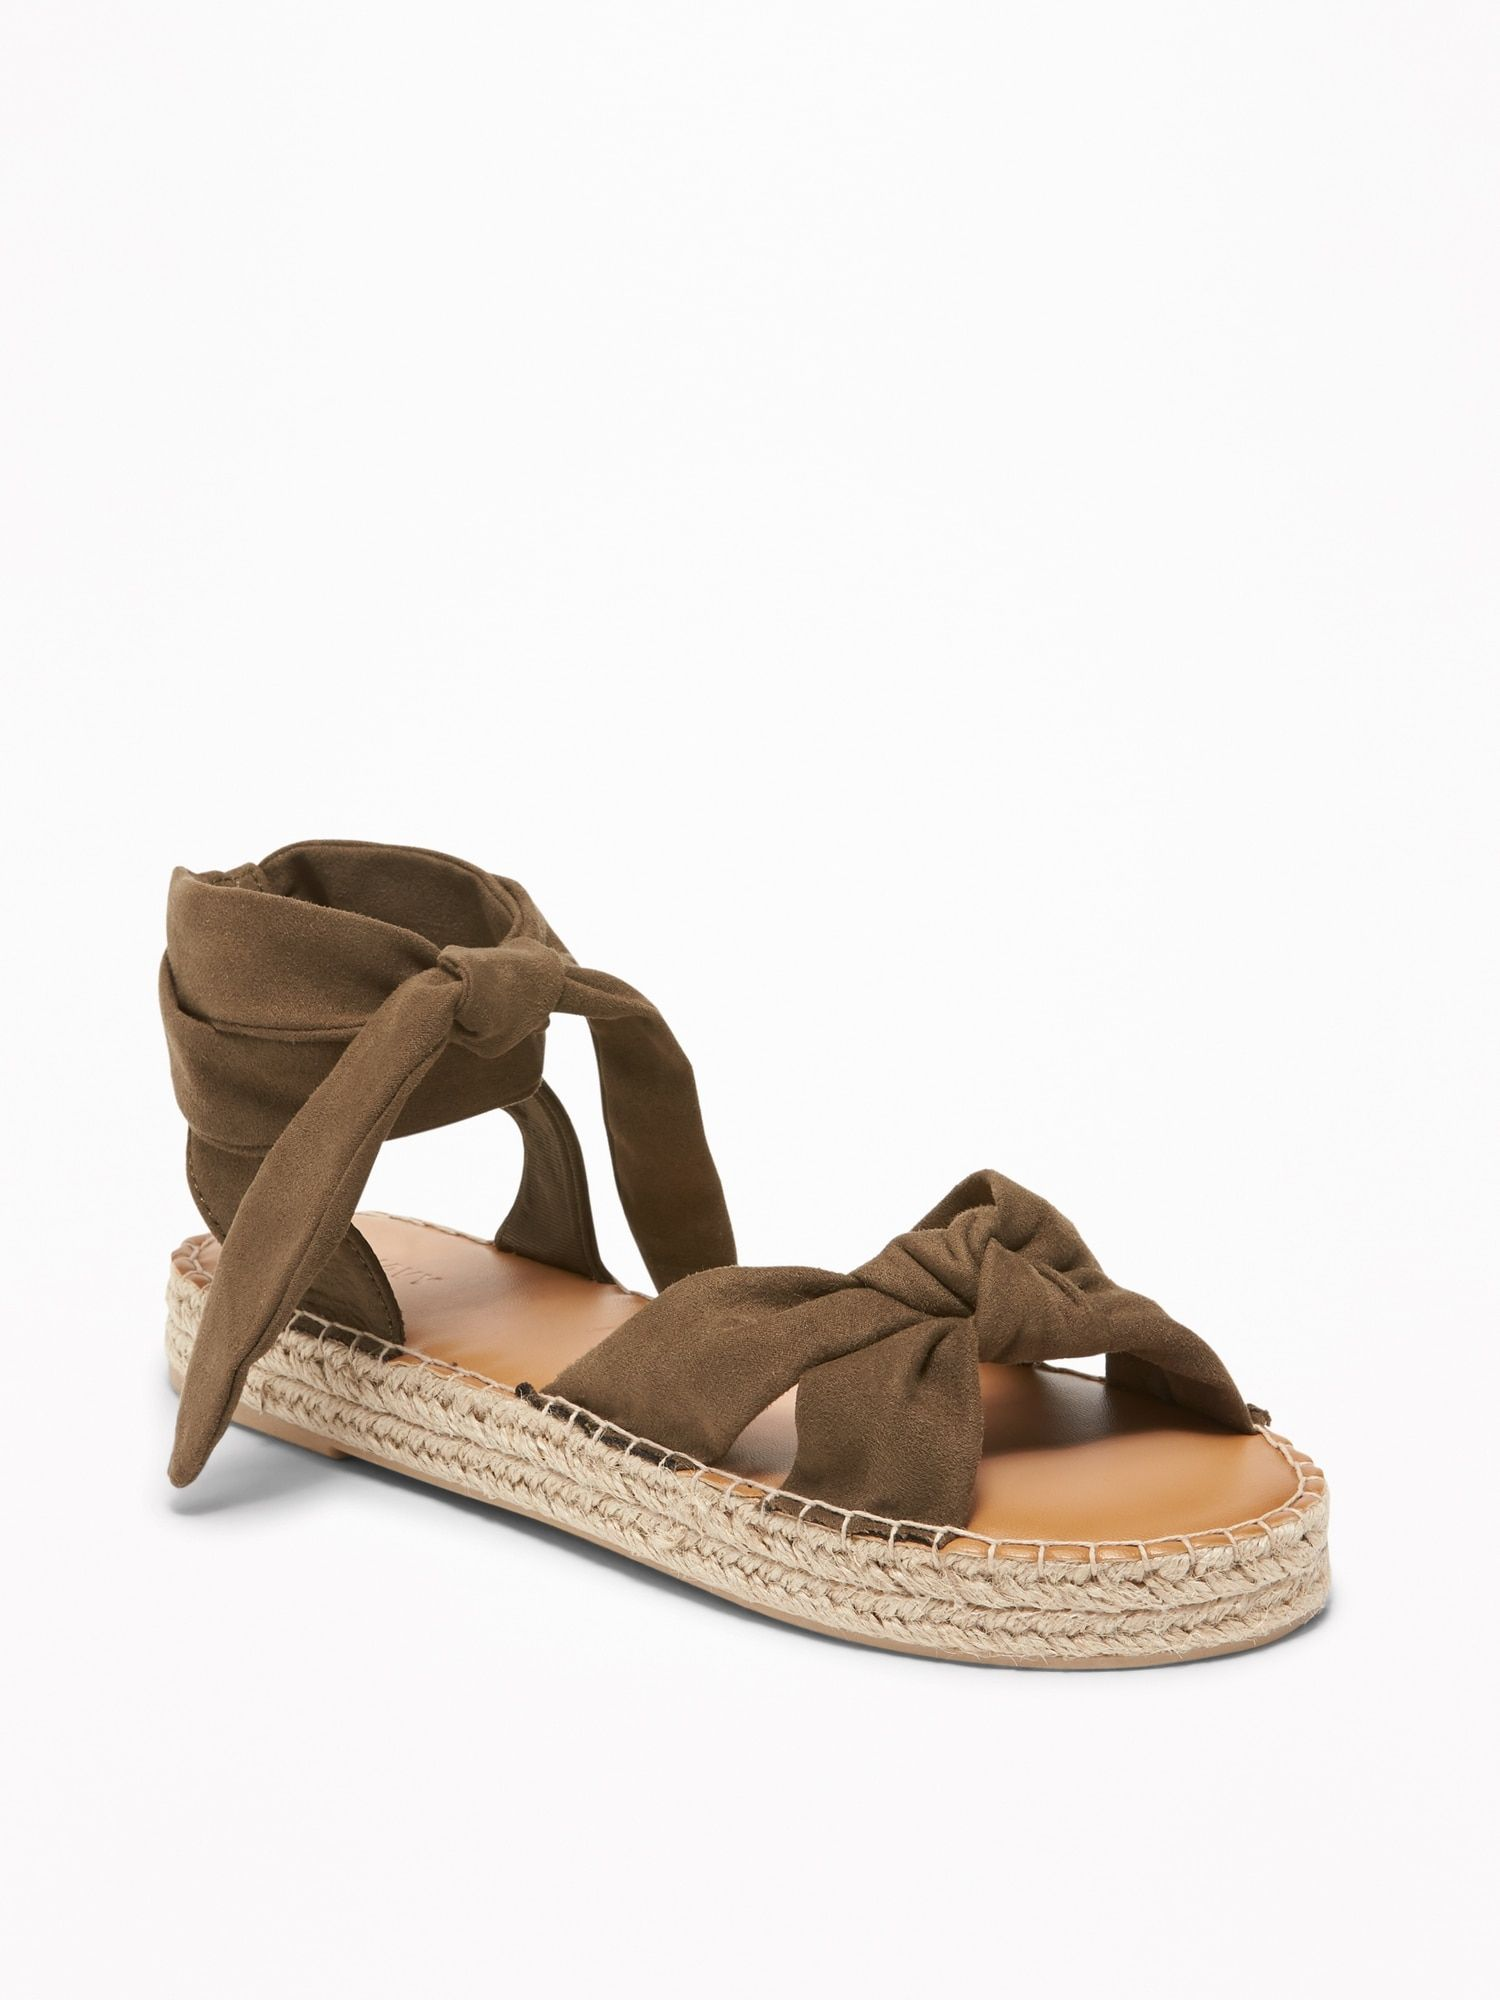 6f572c800e1e Sueded Lace-Up Platform Espadrilles for Women in 2019